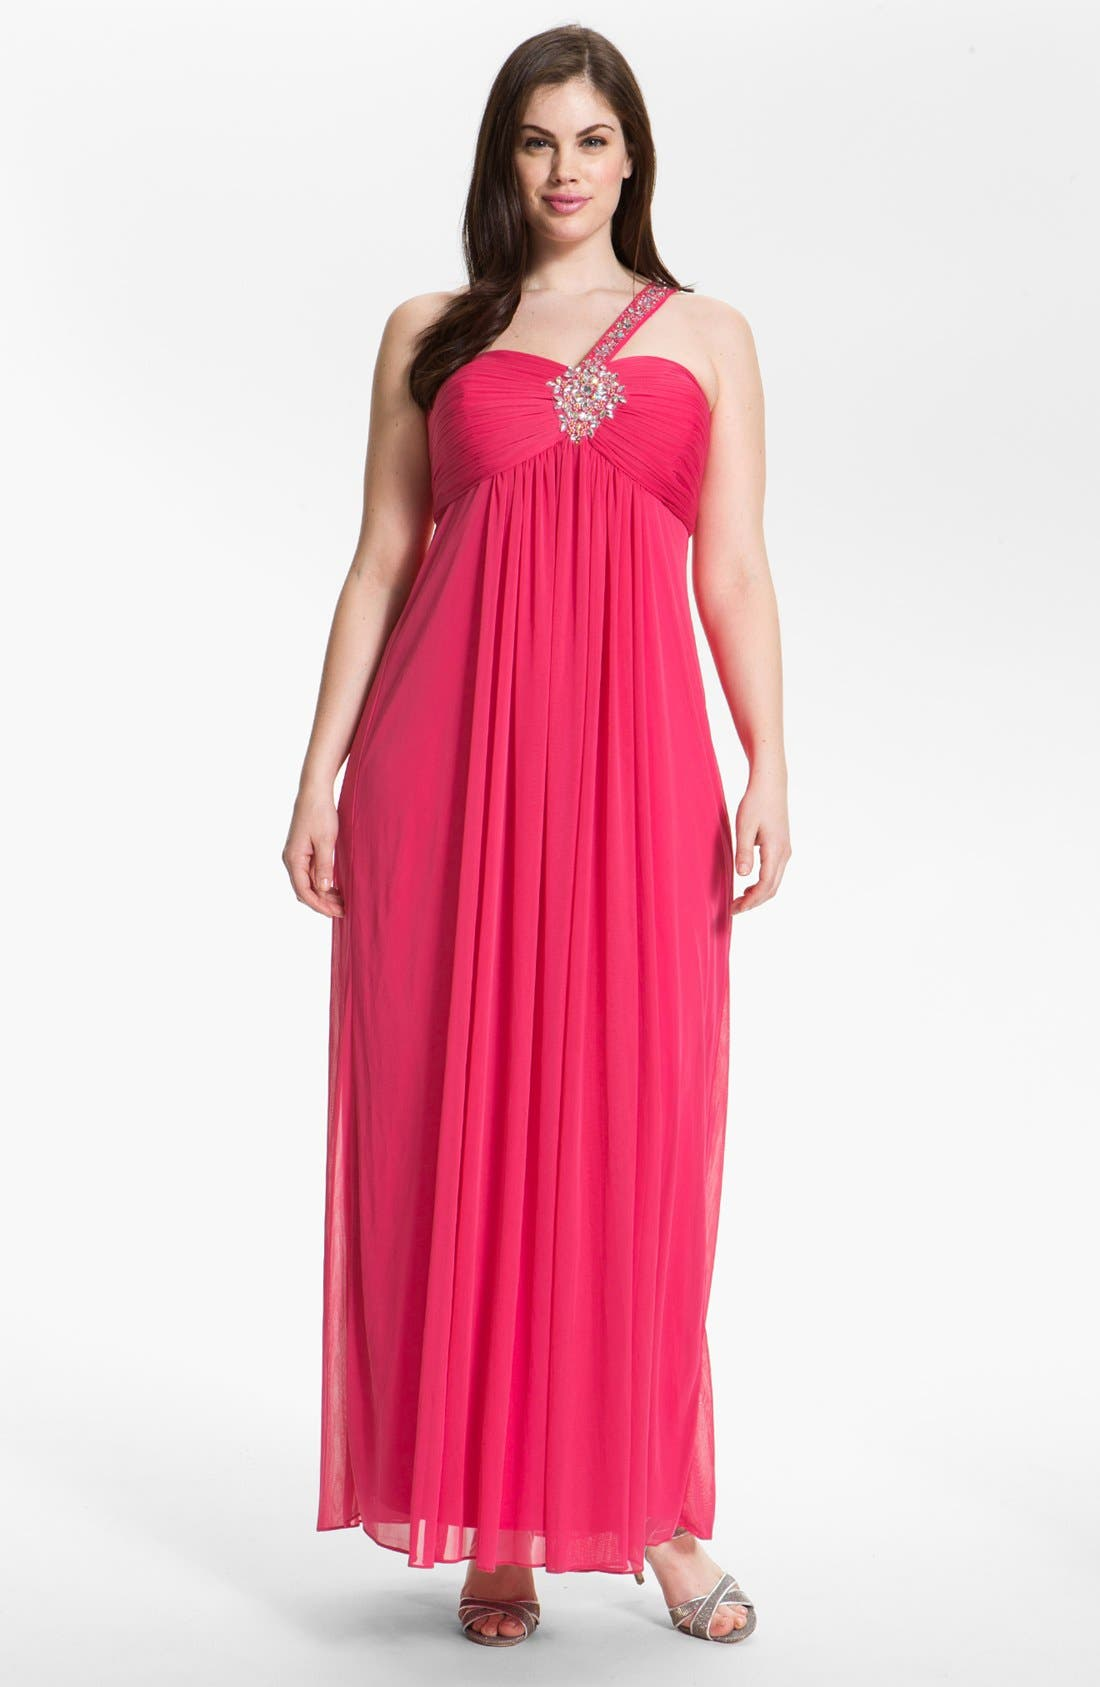 Alternate Image 1 Selected - Xscape Embellished One Shoulder Mesh Gown (Plus Size)